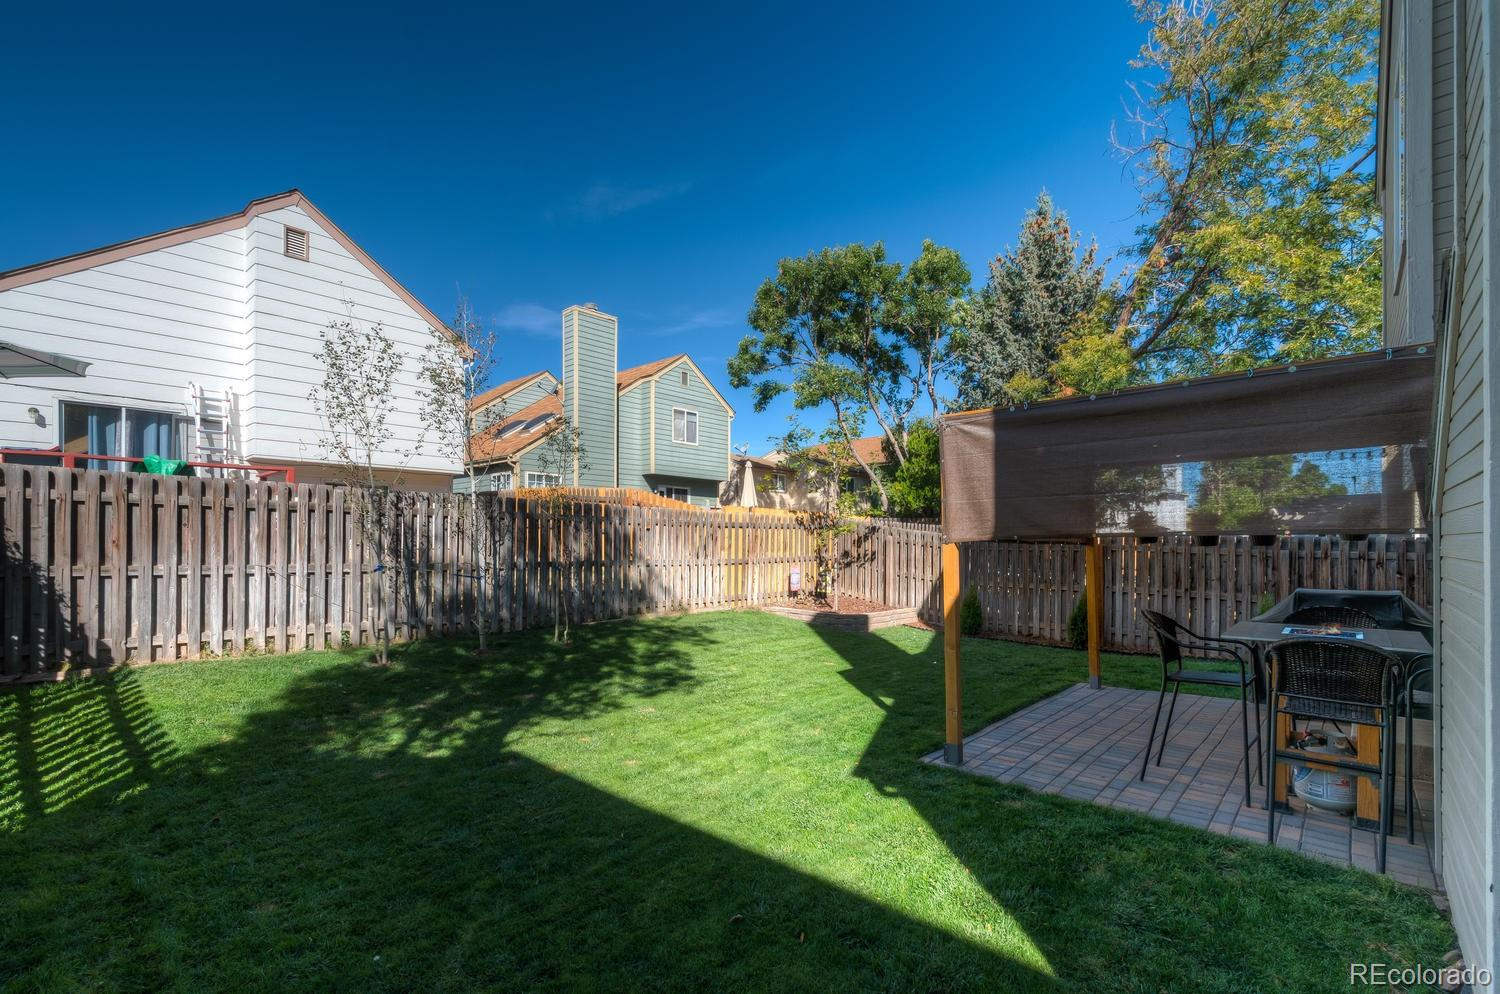 MLS# 2006537 - 30 - 5629 S Youngfield Way, Littleton, CO 80127